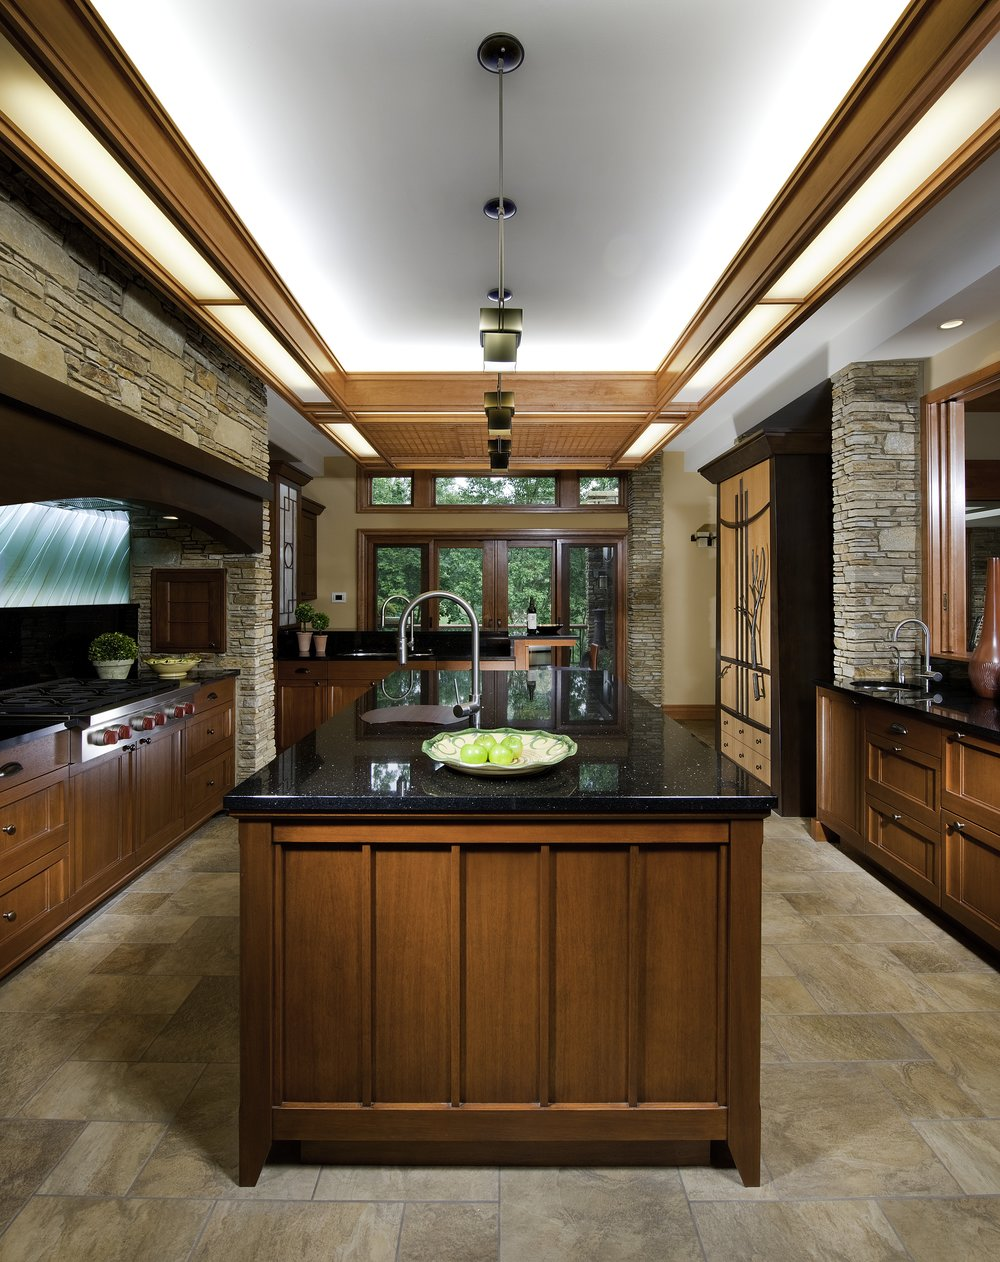 KBC_kitchen_bath_concepts_Kitchen_133.jpg